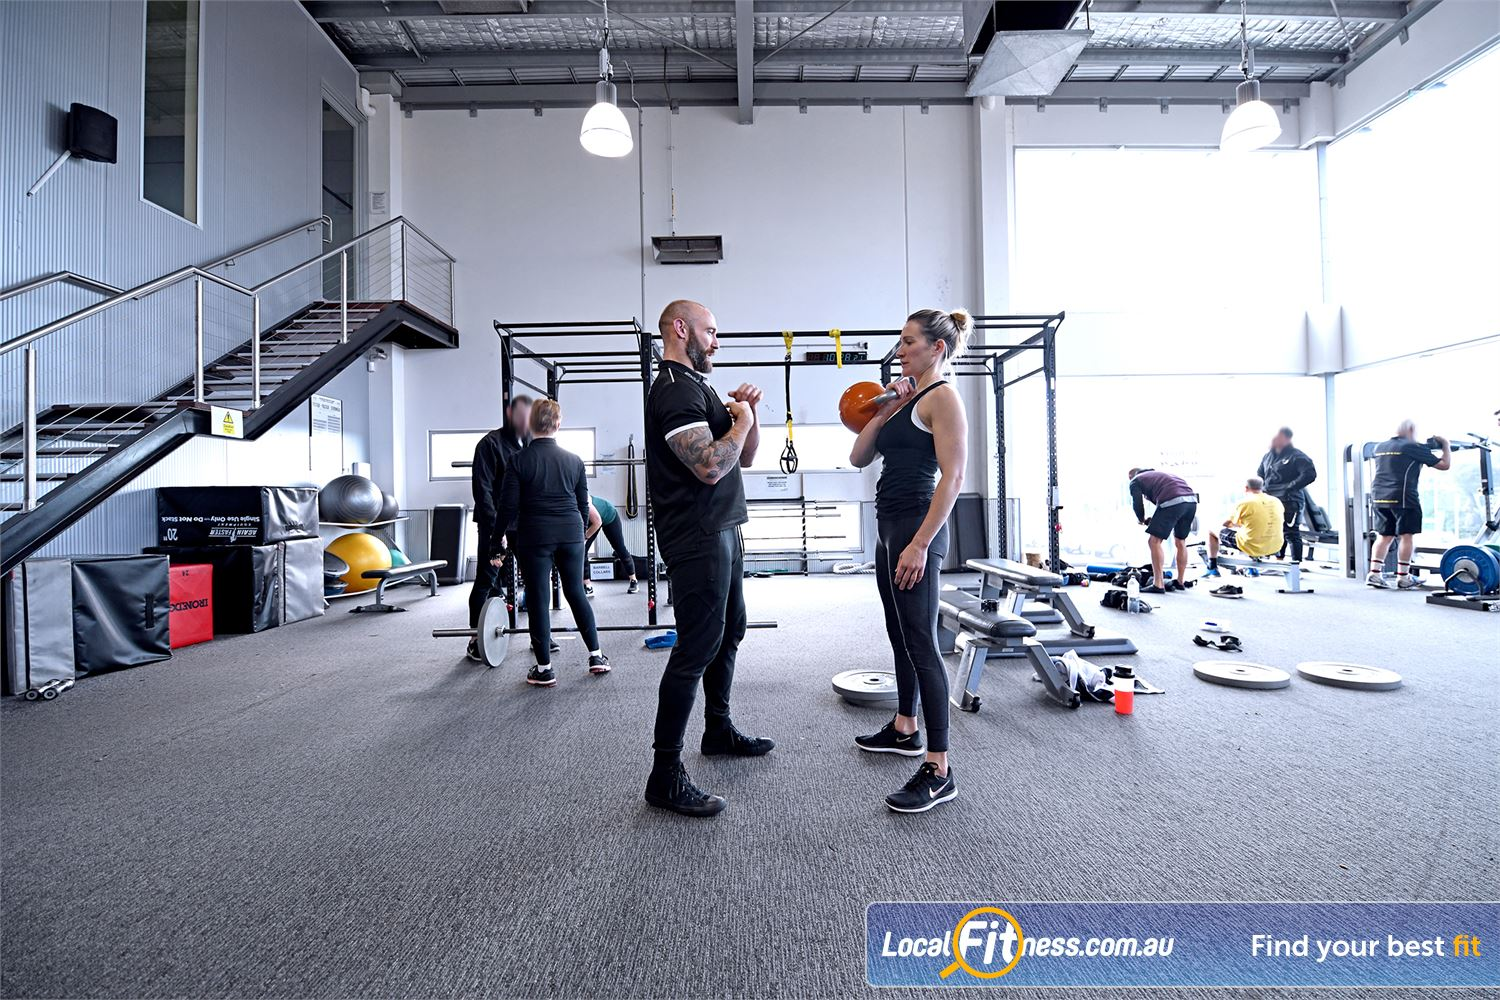 Goodlife Health Clubs Near South Geelong Improve your form and training with guidance from our Geelong personal trainers.